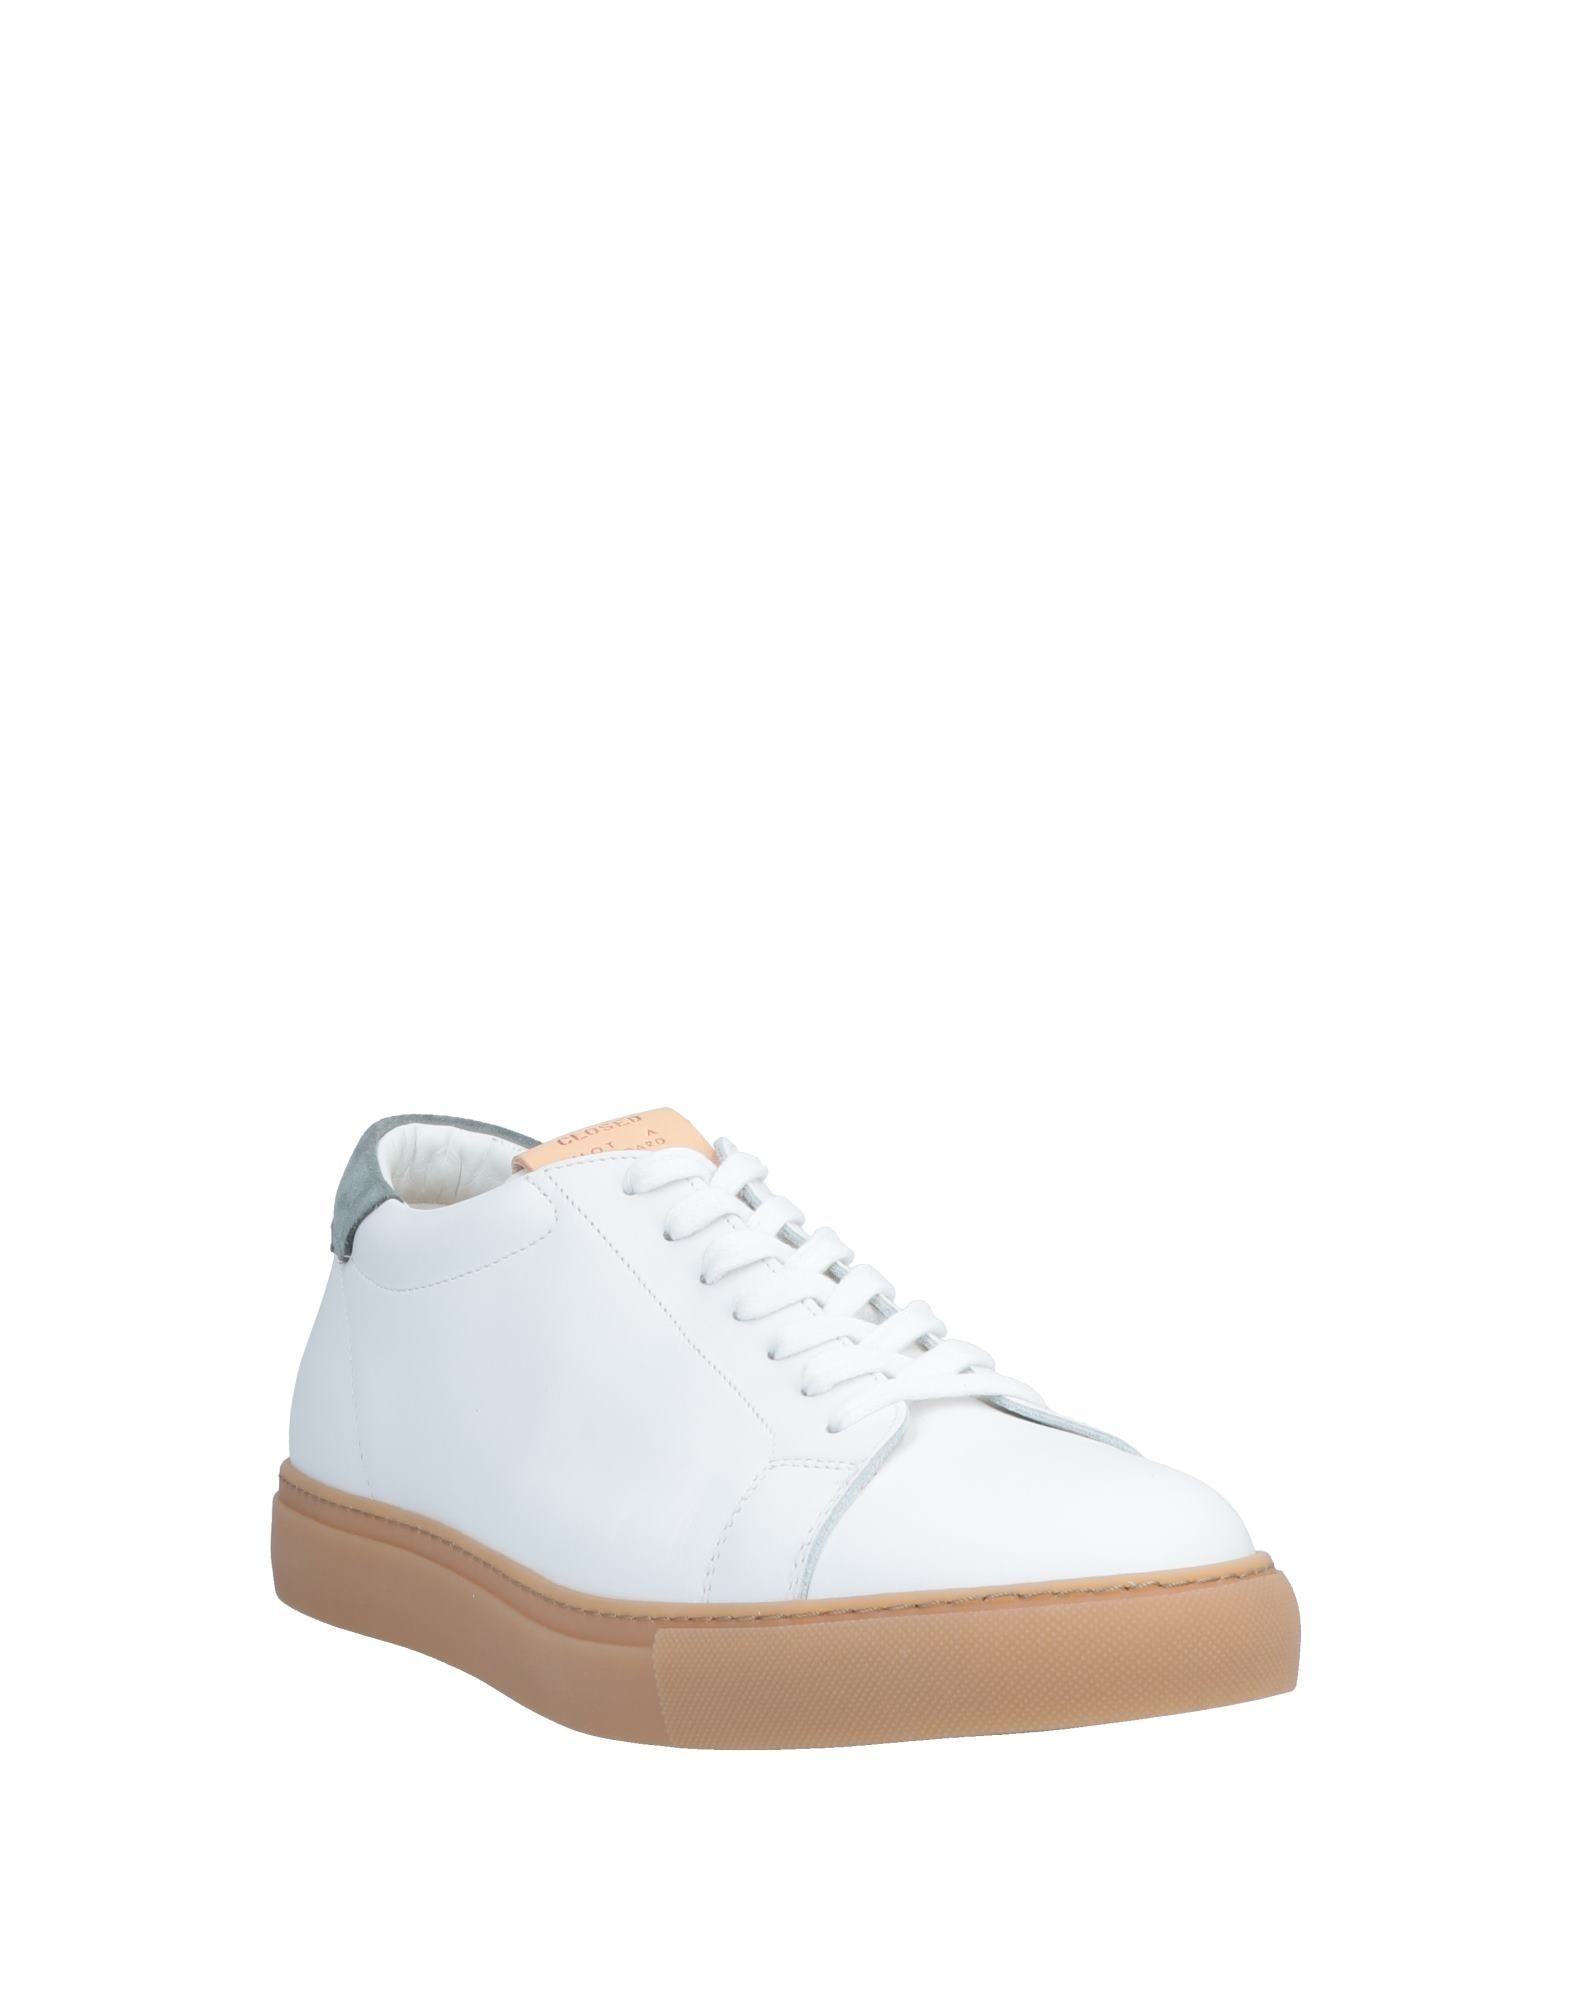 FOOTWEAR Closed White Man Leather